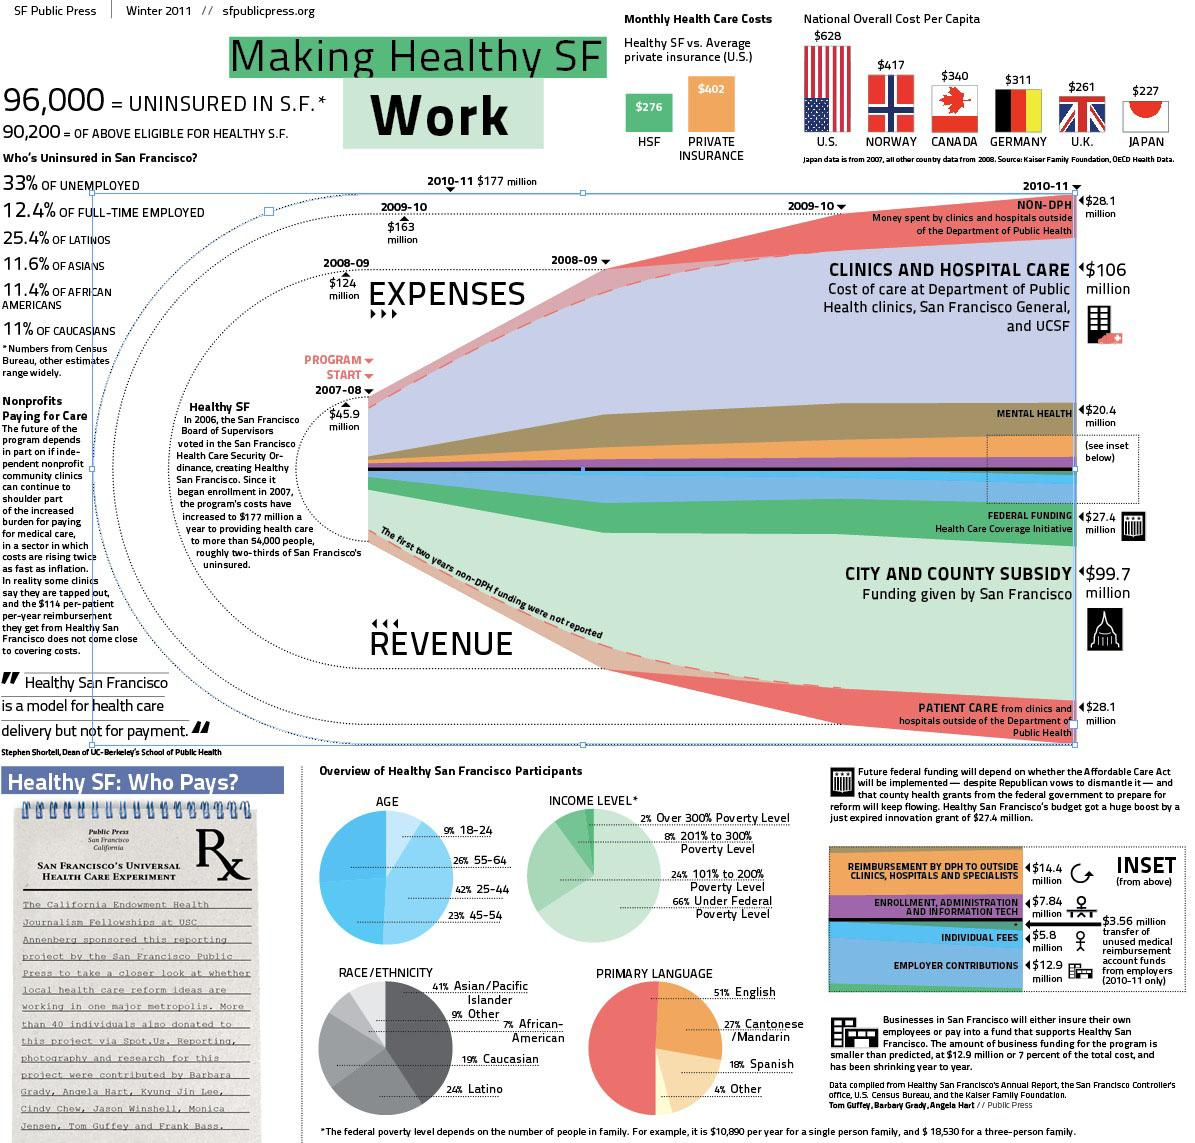 See explainer graphic: http://sfpublicpress.org/files/news/healthy-sf-graphic.jpg